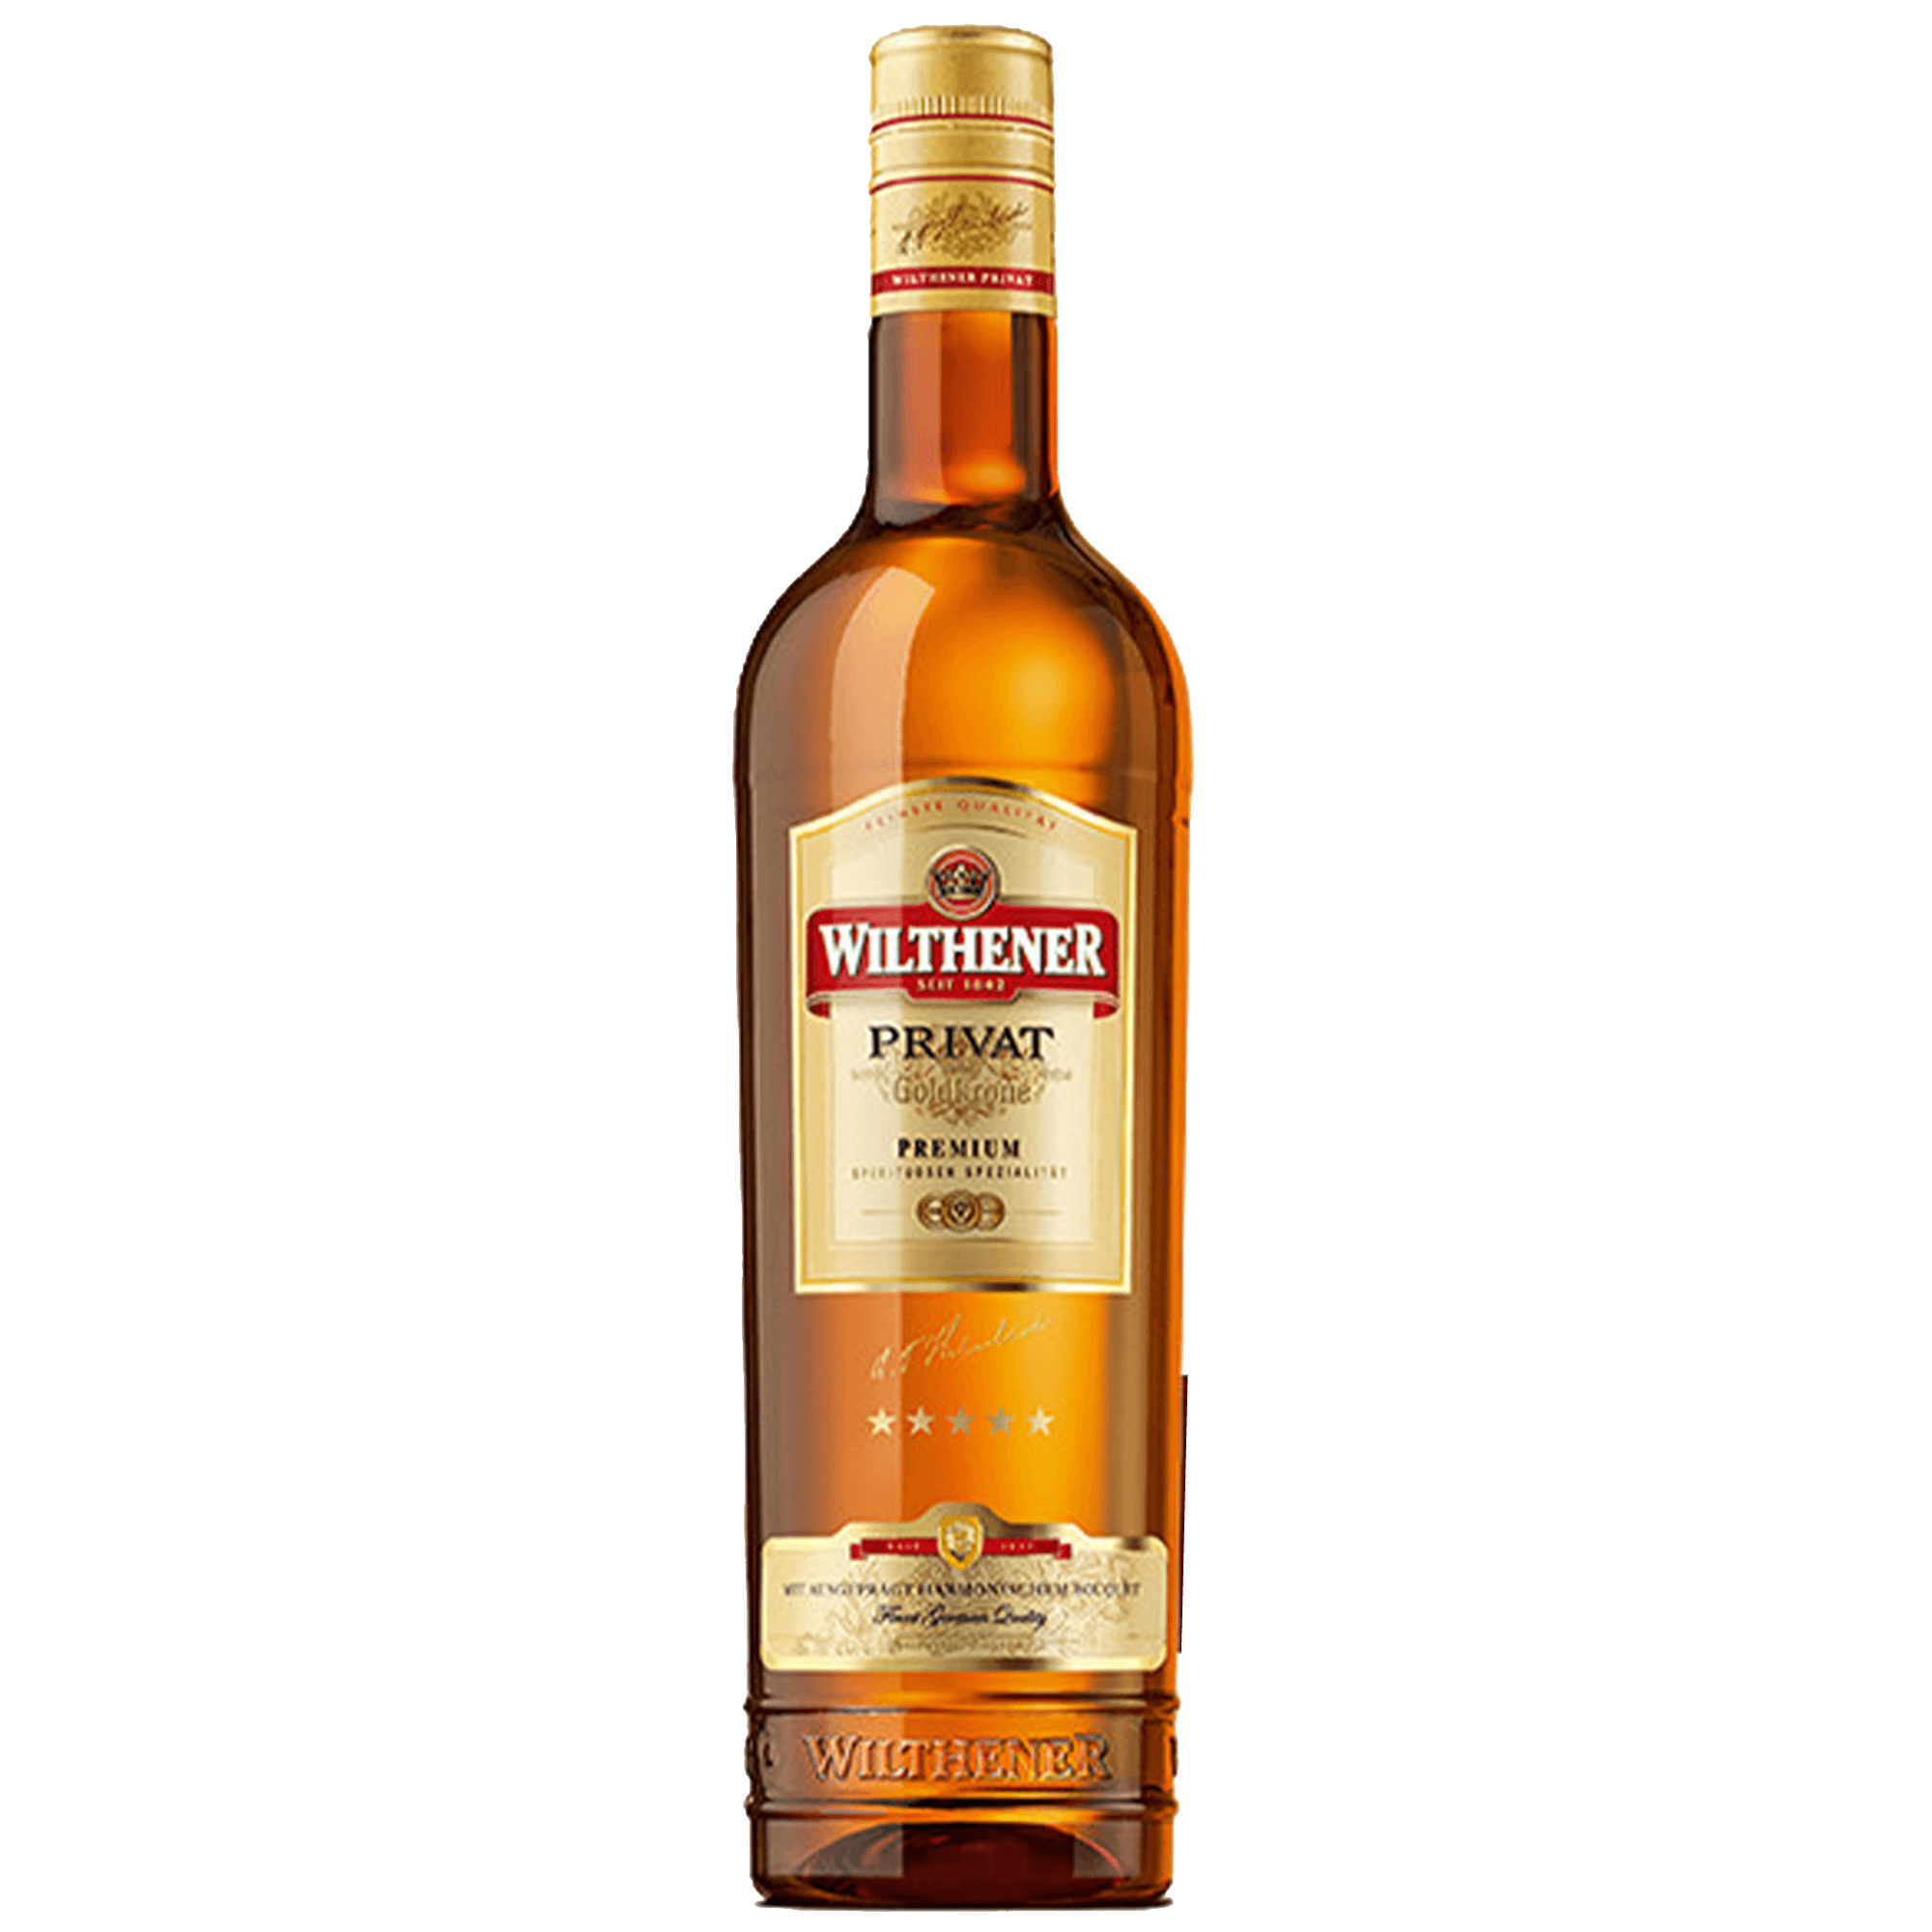 Wilthener Goldkrone Privat 0,7l